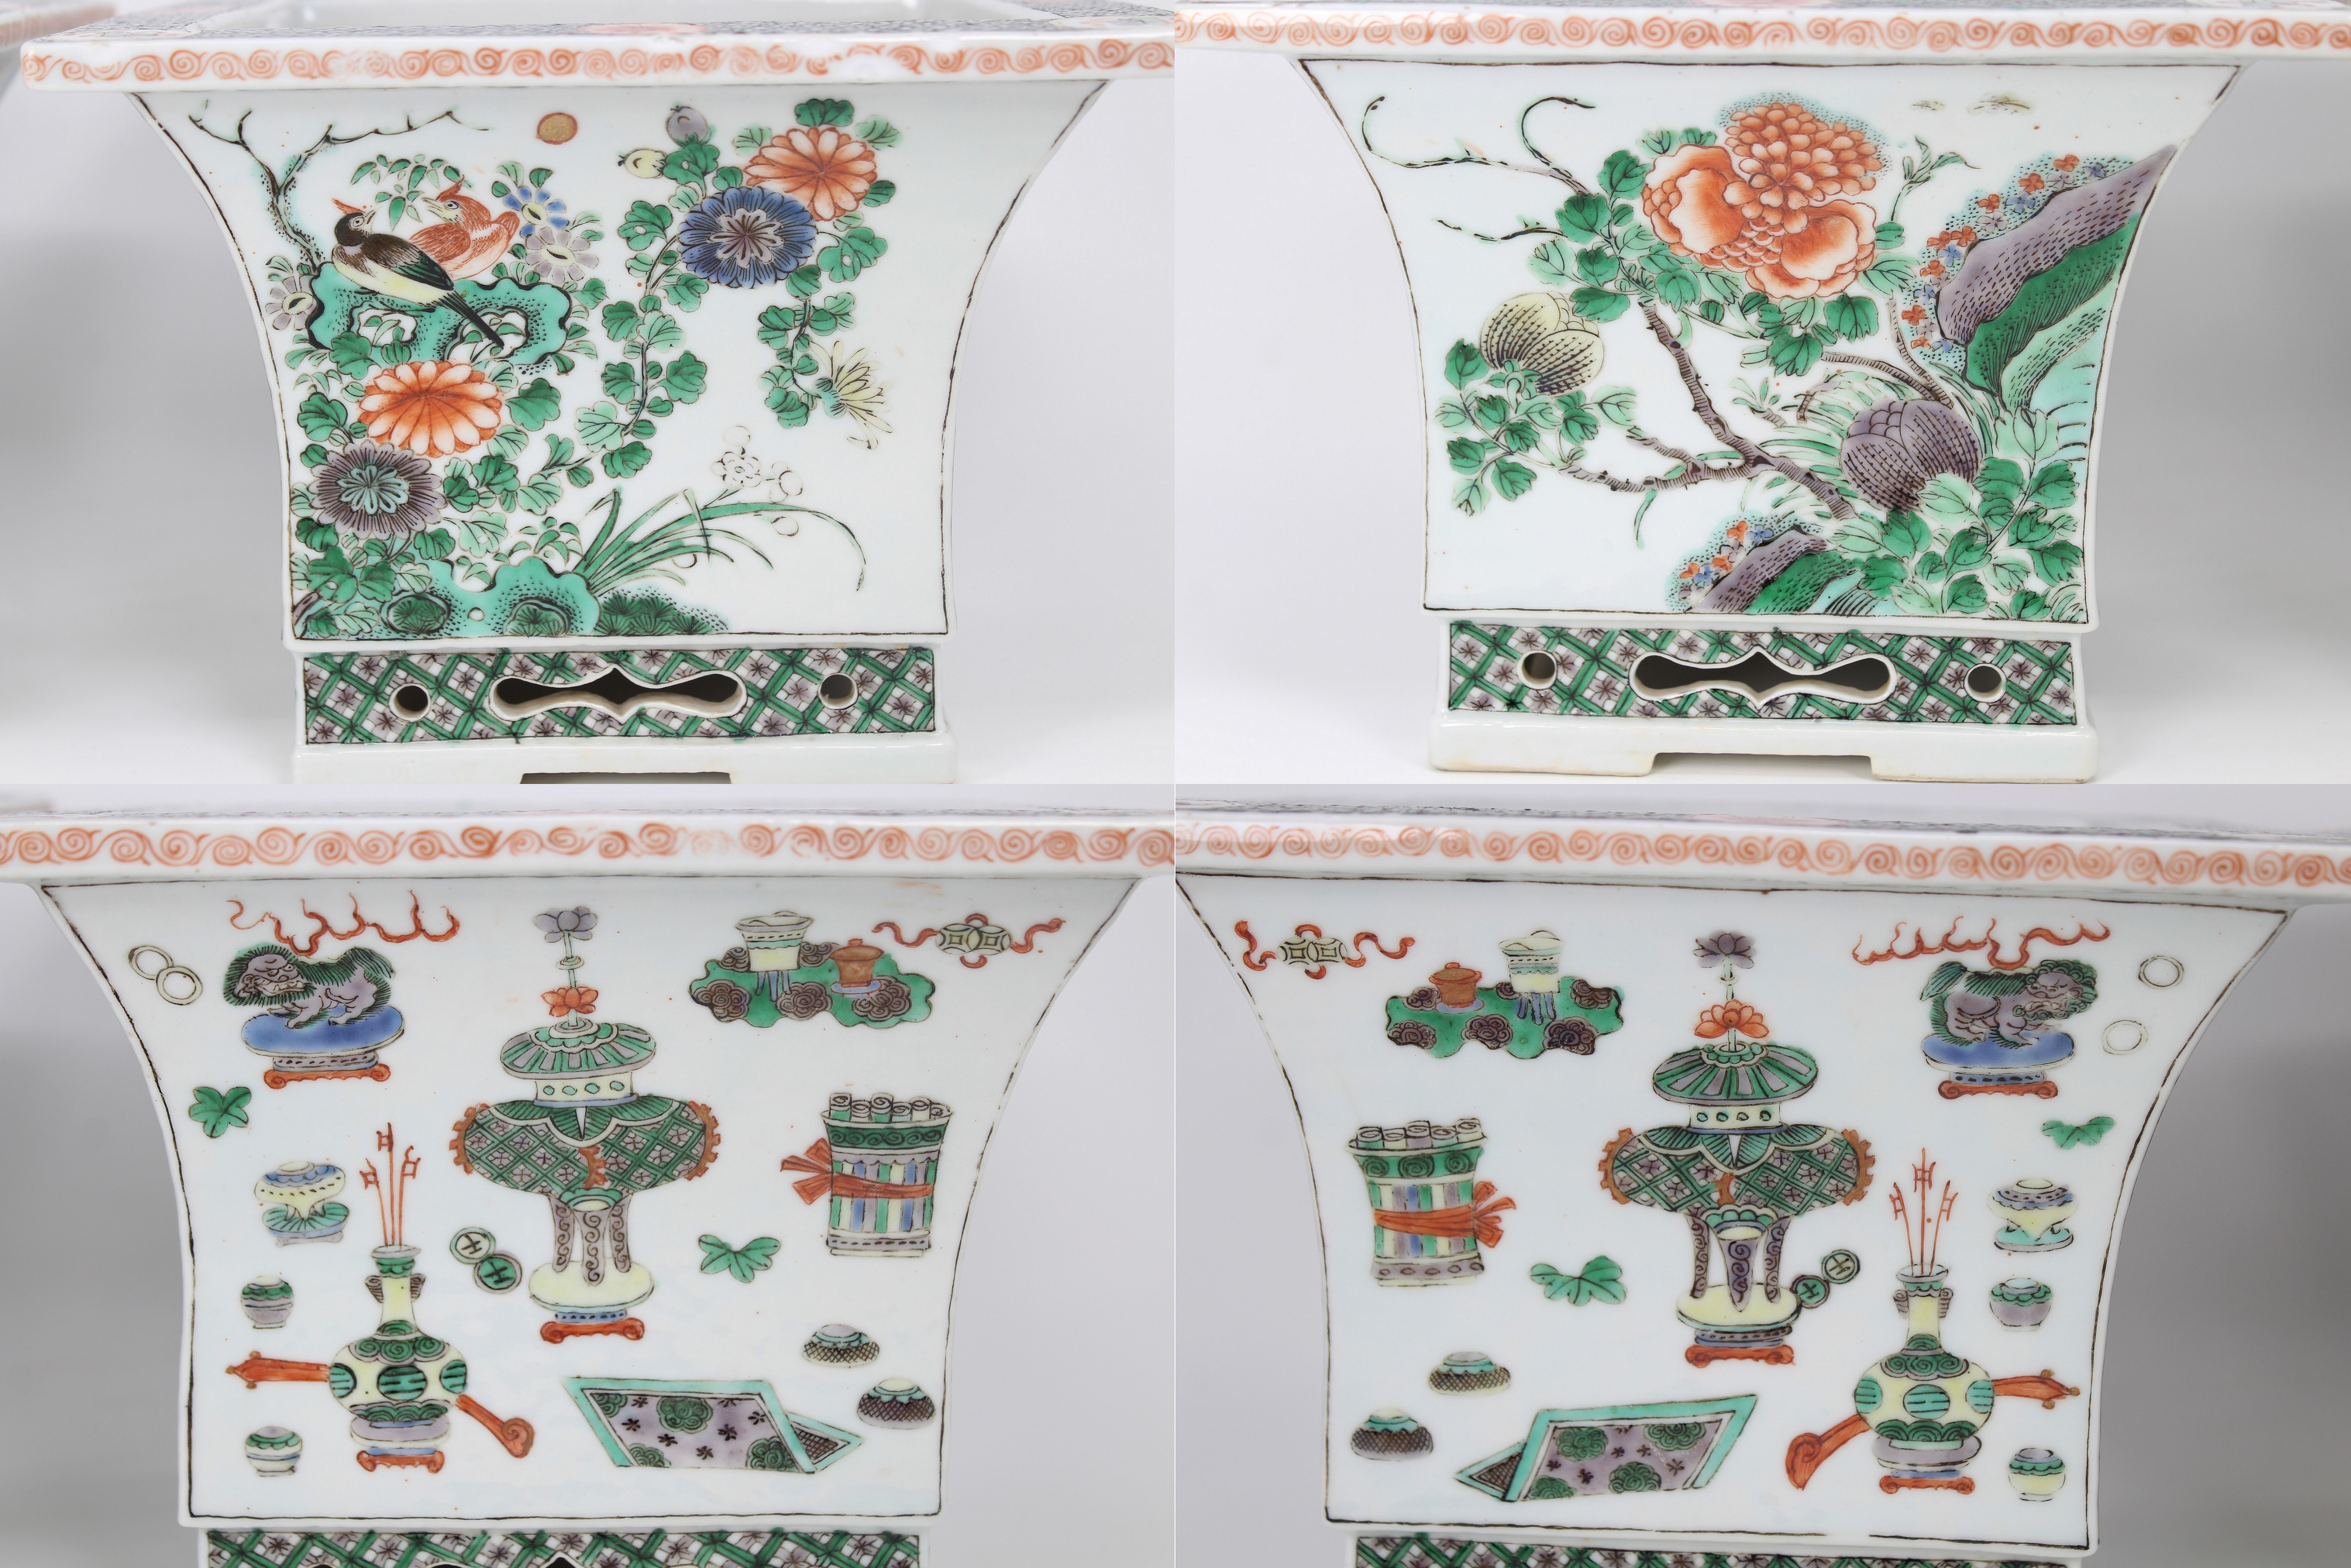 Lot 48 - Pair Chinese Famille Verte Porcelain Jardinieres